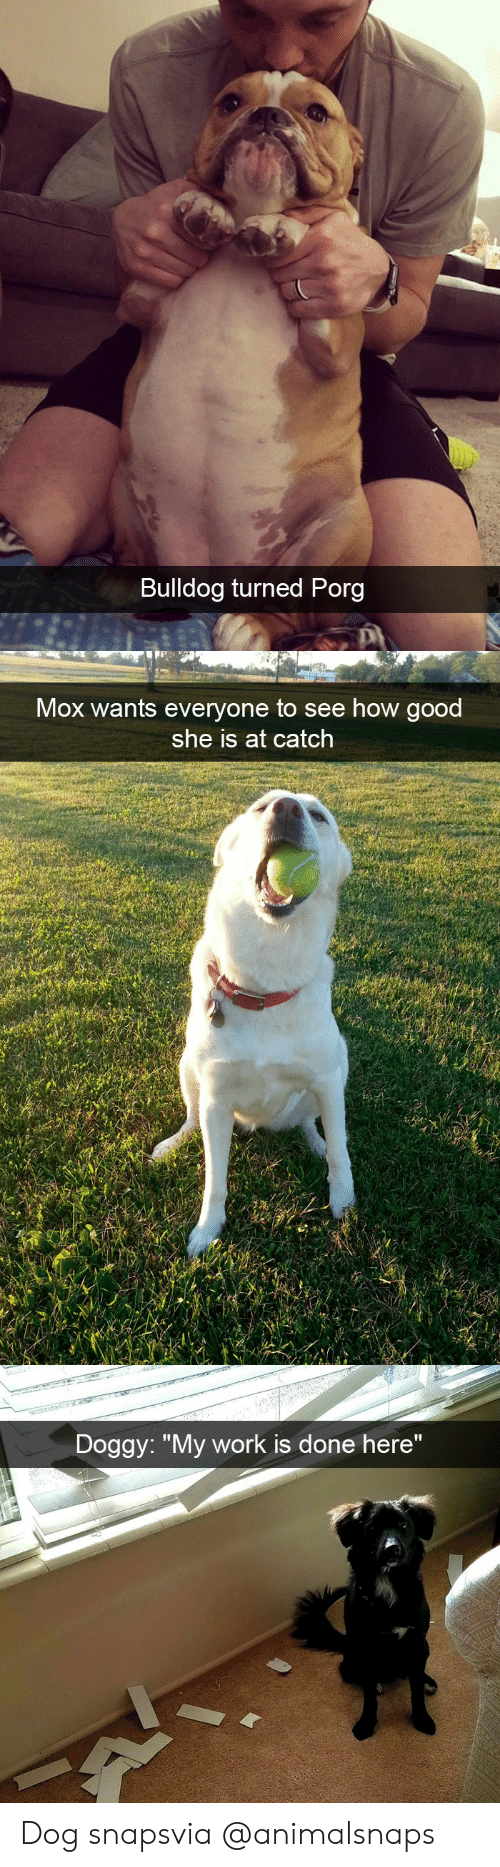 """Target, Tumblr, and Work: Bulldog turned Porg   Mox wants everyone to see how good  she is at catch   Doggy: """"My work is done here"""" Dog snapsvia @animalsnaps"""